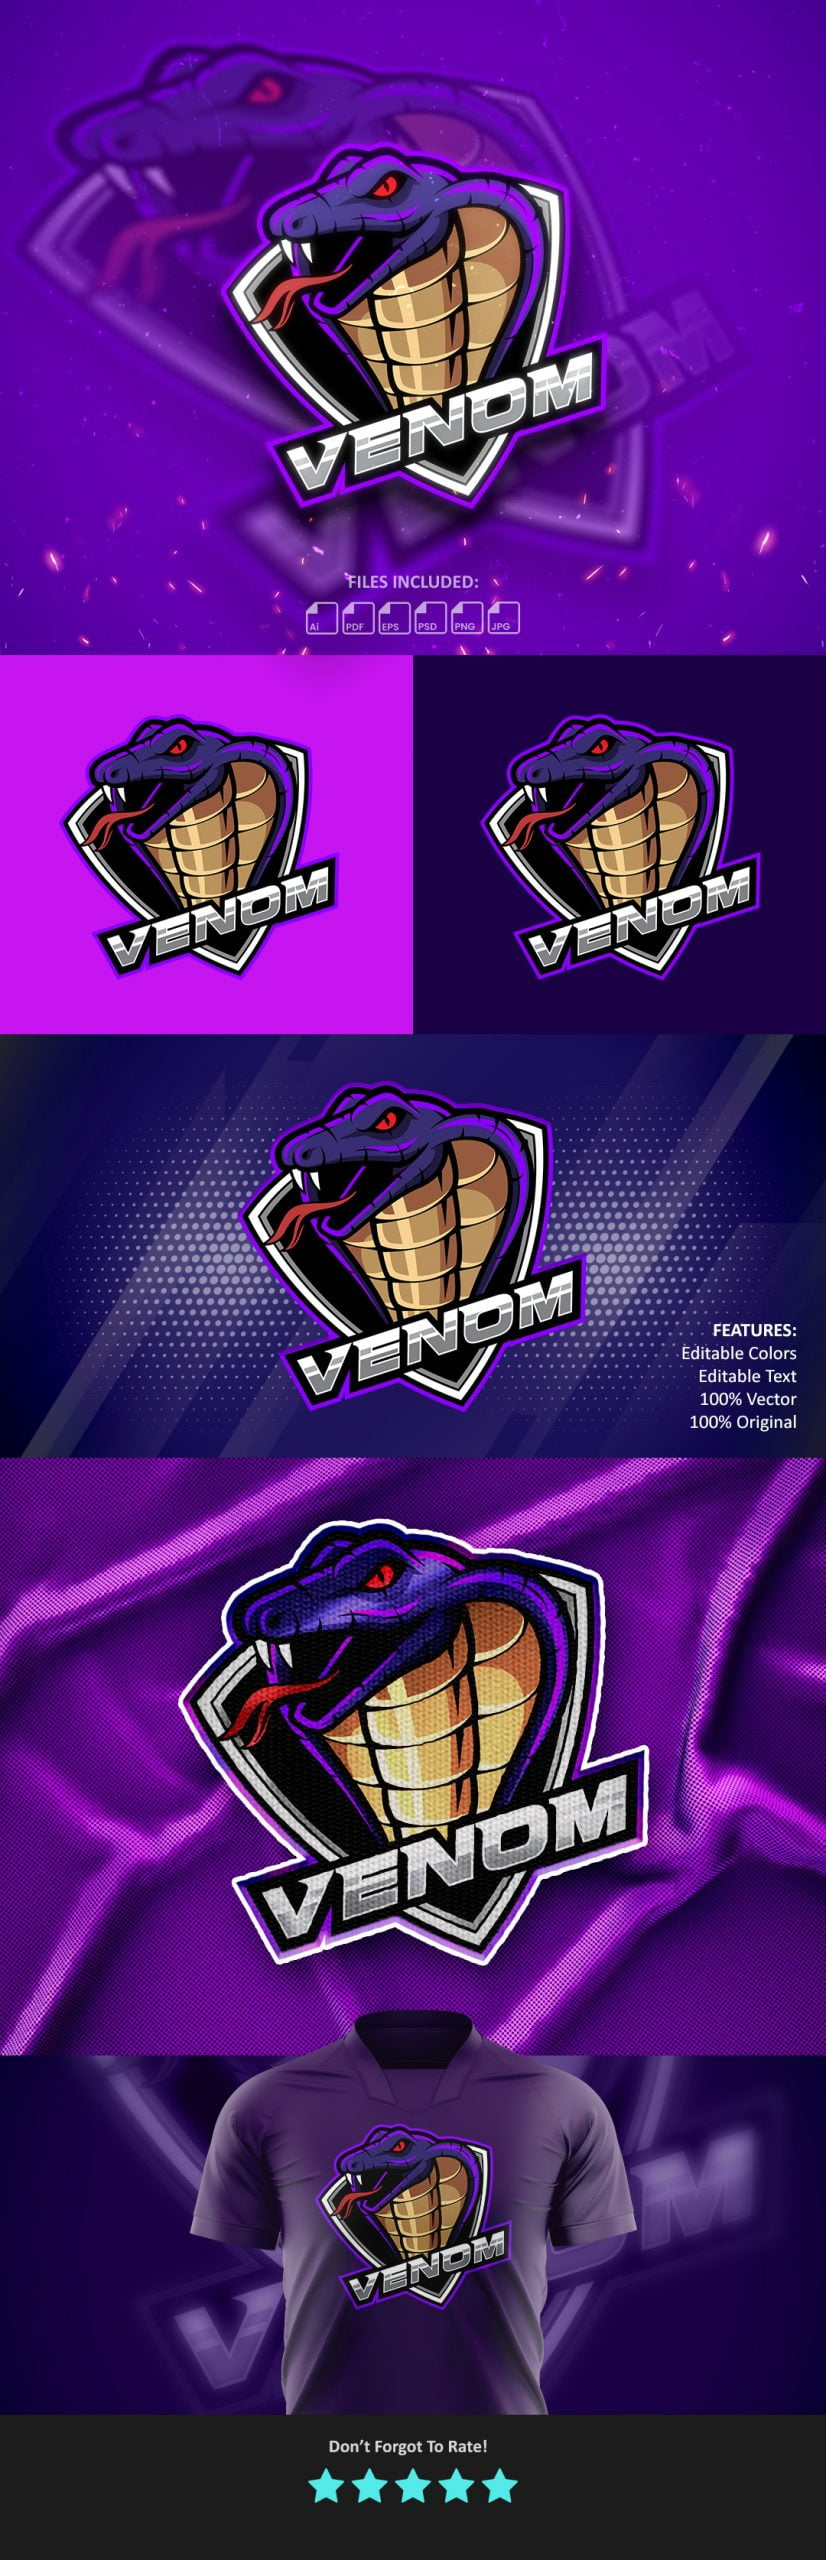 Venom-Mascot-Gaming-Logo-Preview-Generator